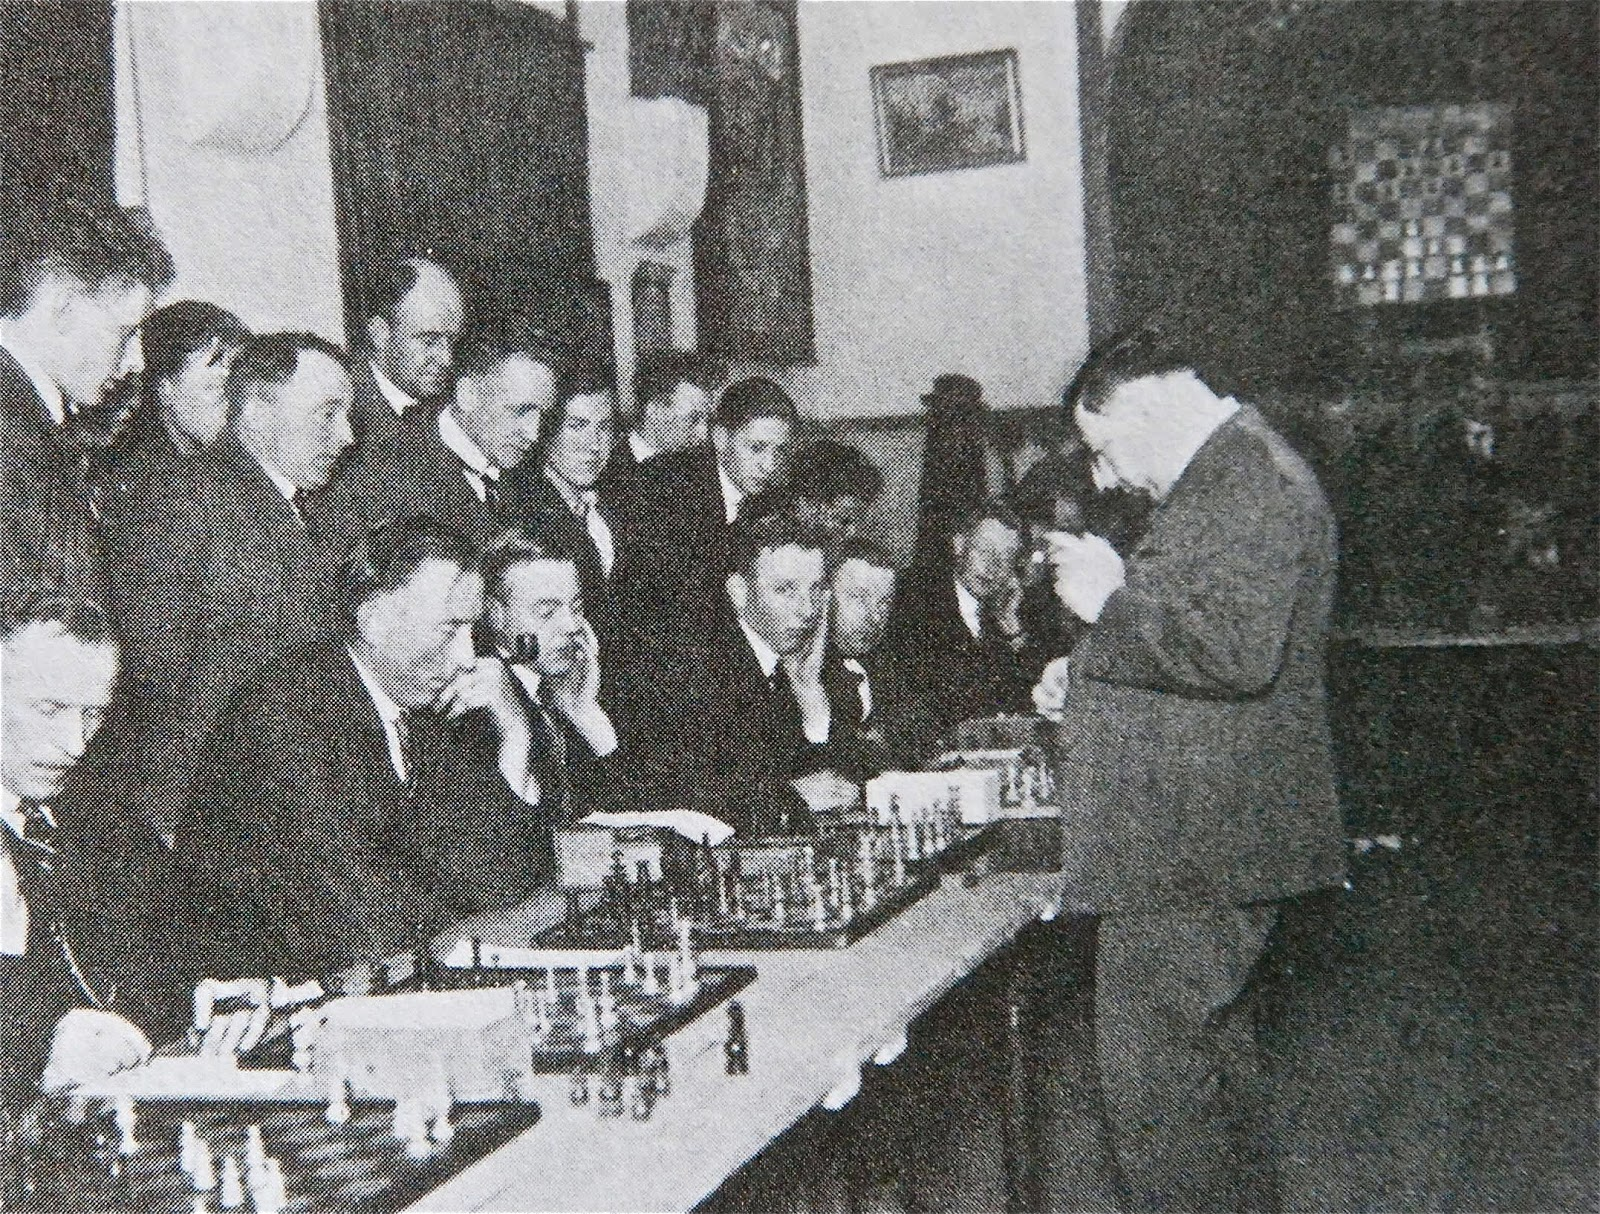 Boylston Chess Club Weblog: CHESS HISTORY IN PHOTOS